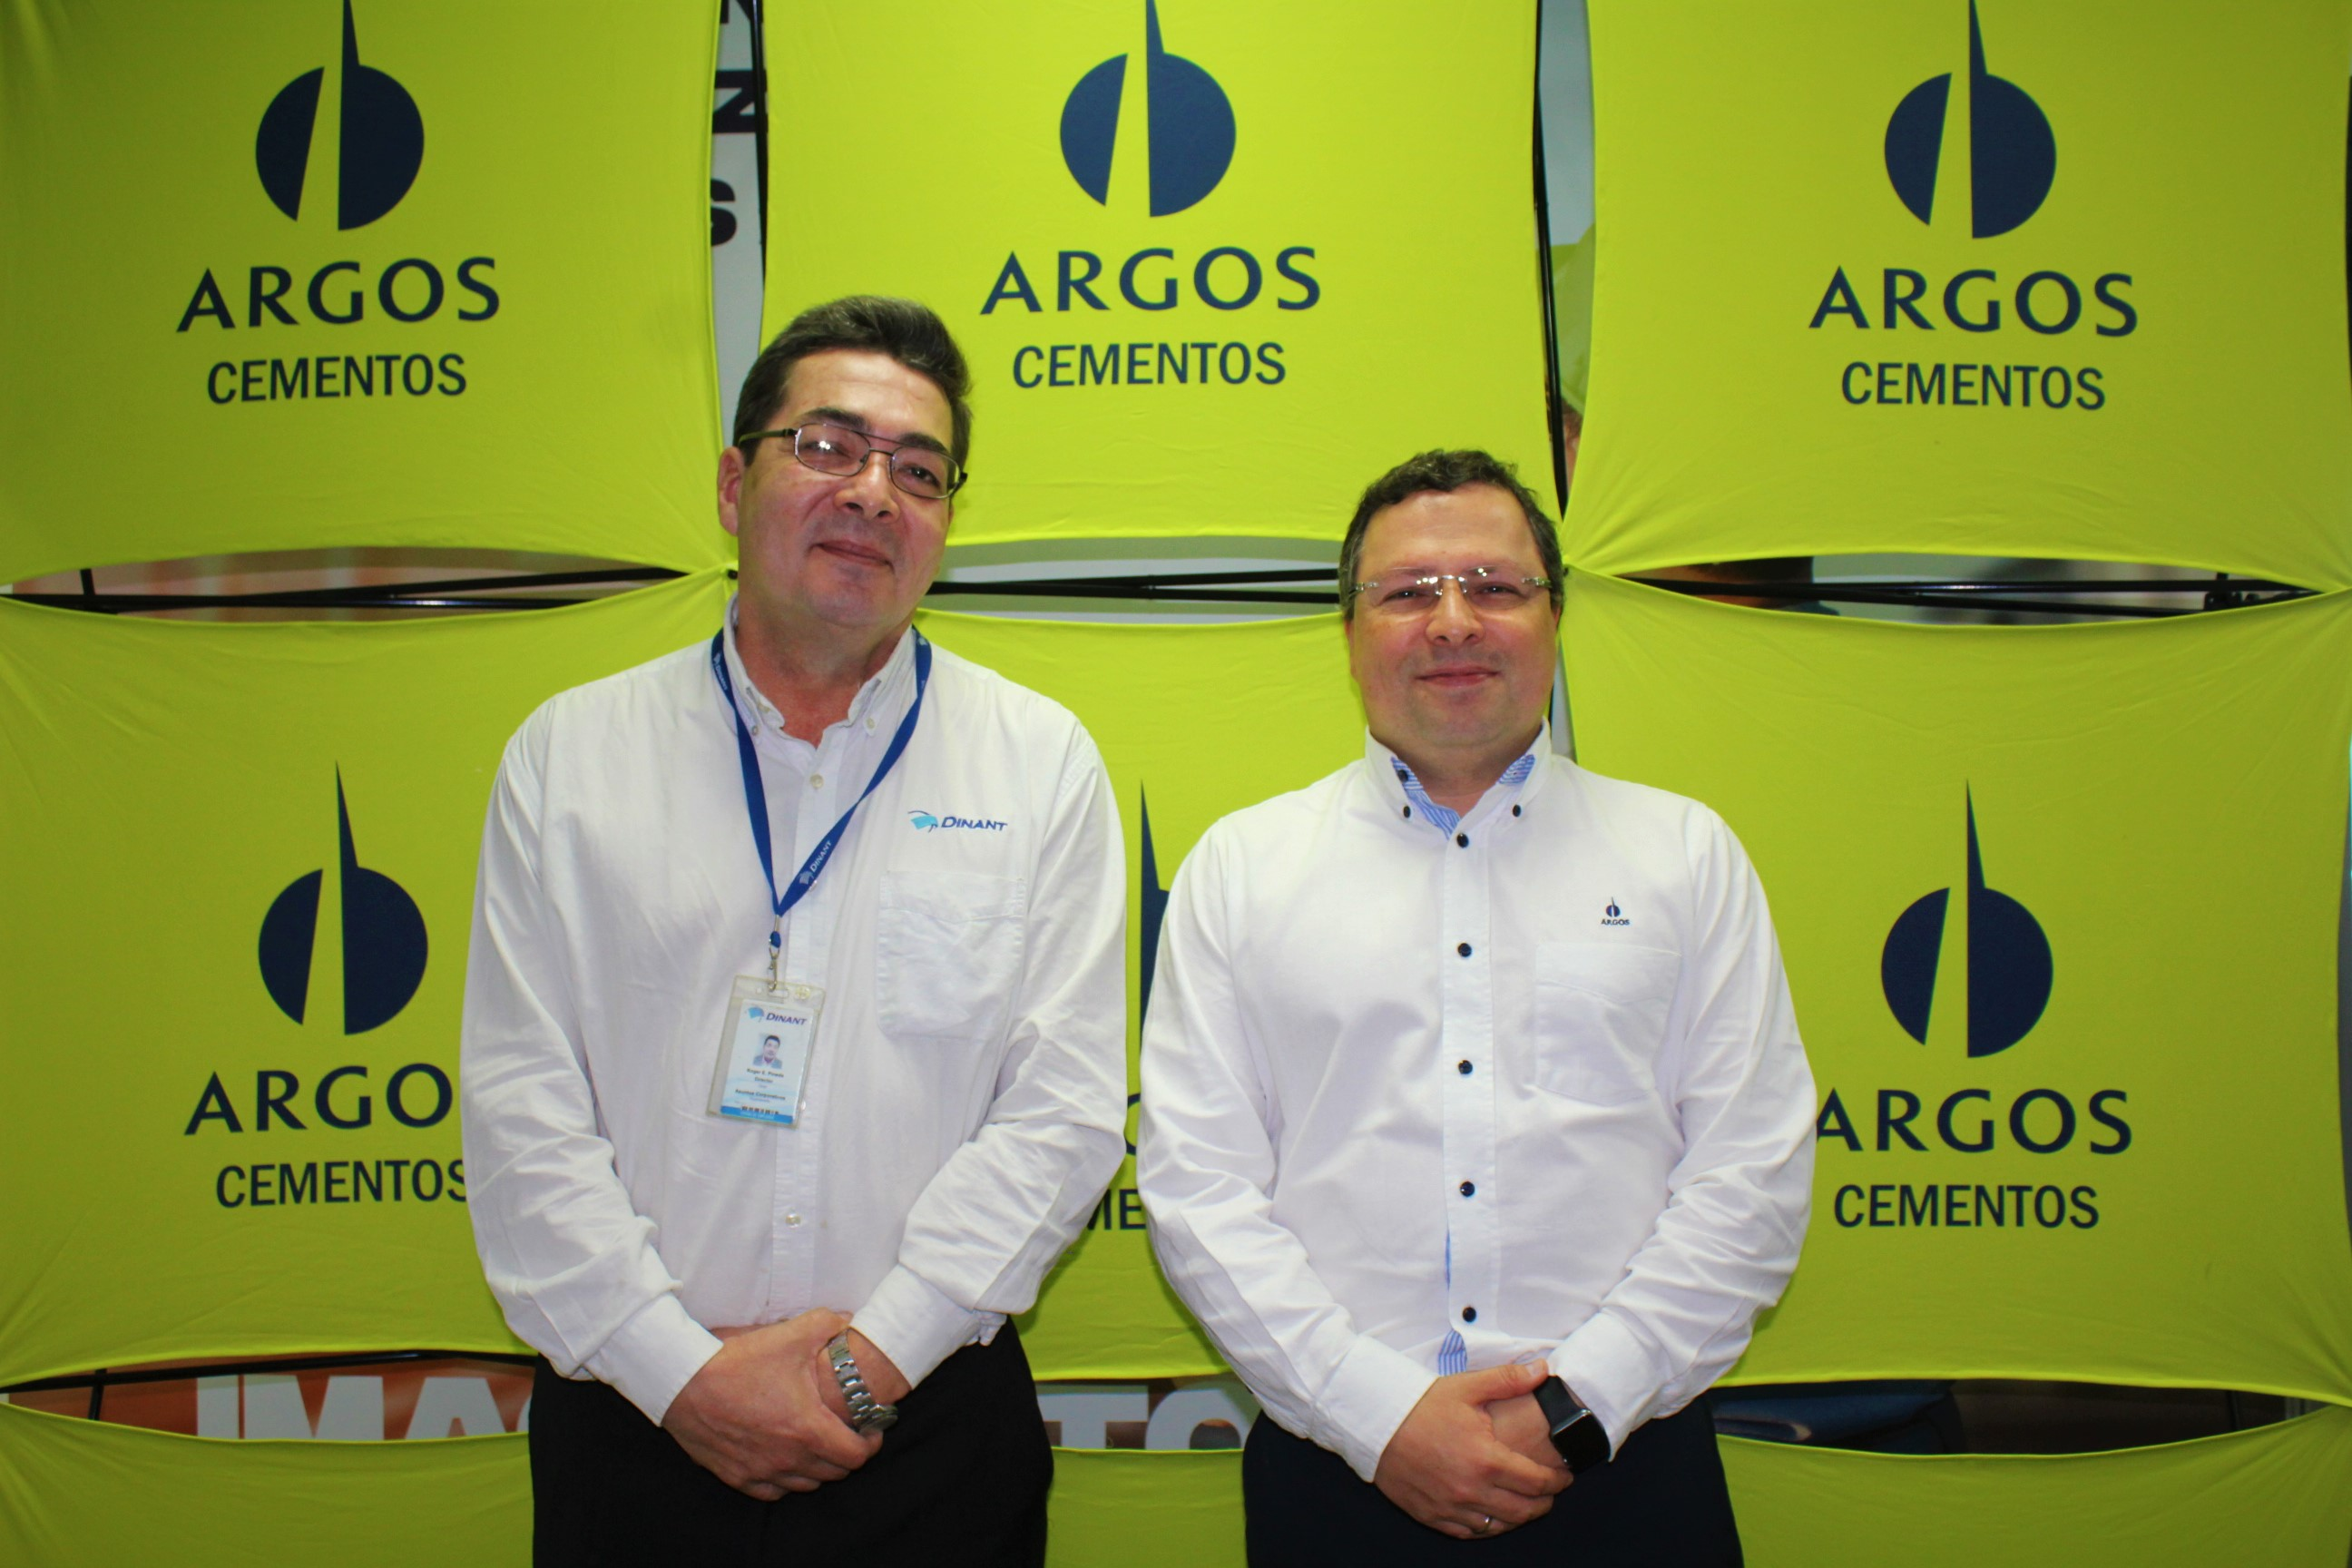 Corporación Dinant and Cementos Argos sign an agreement to be allies in the responsible management of industrial plastic waste